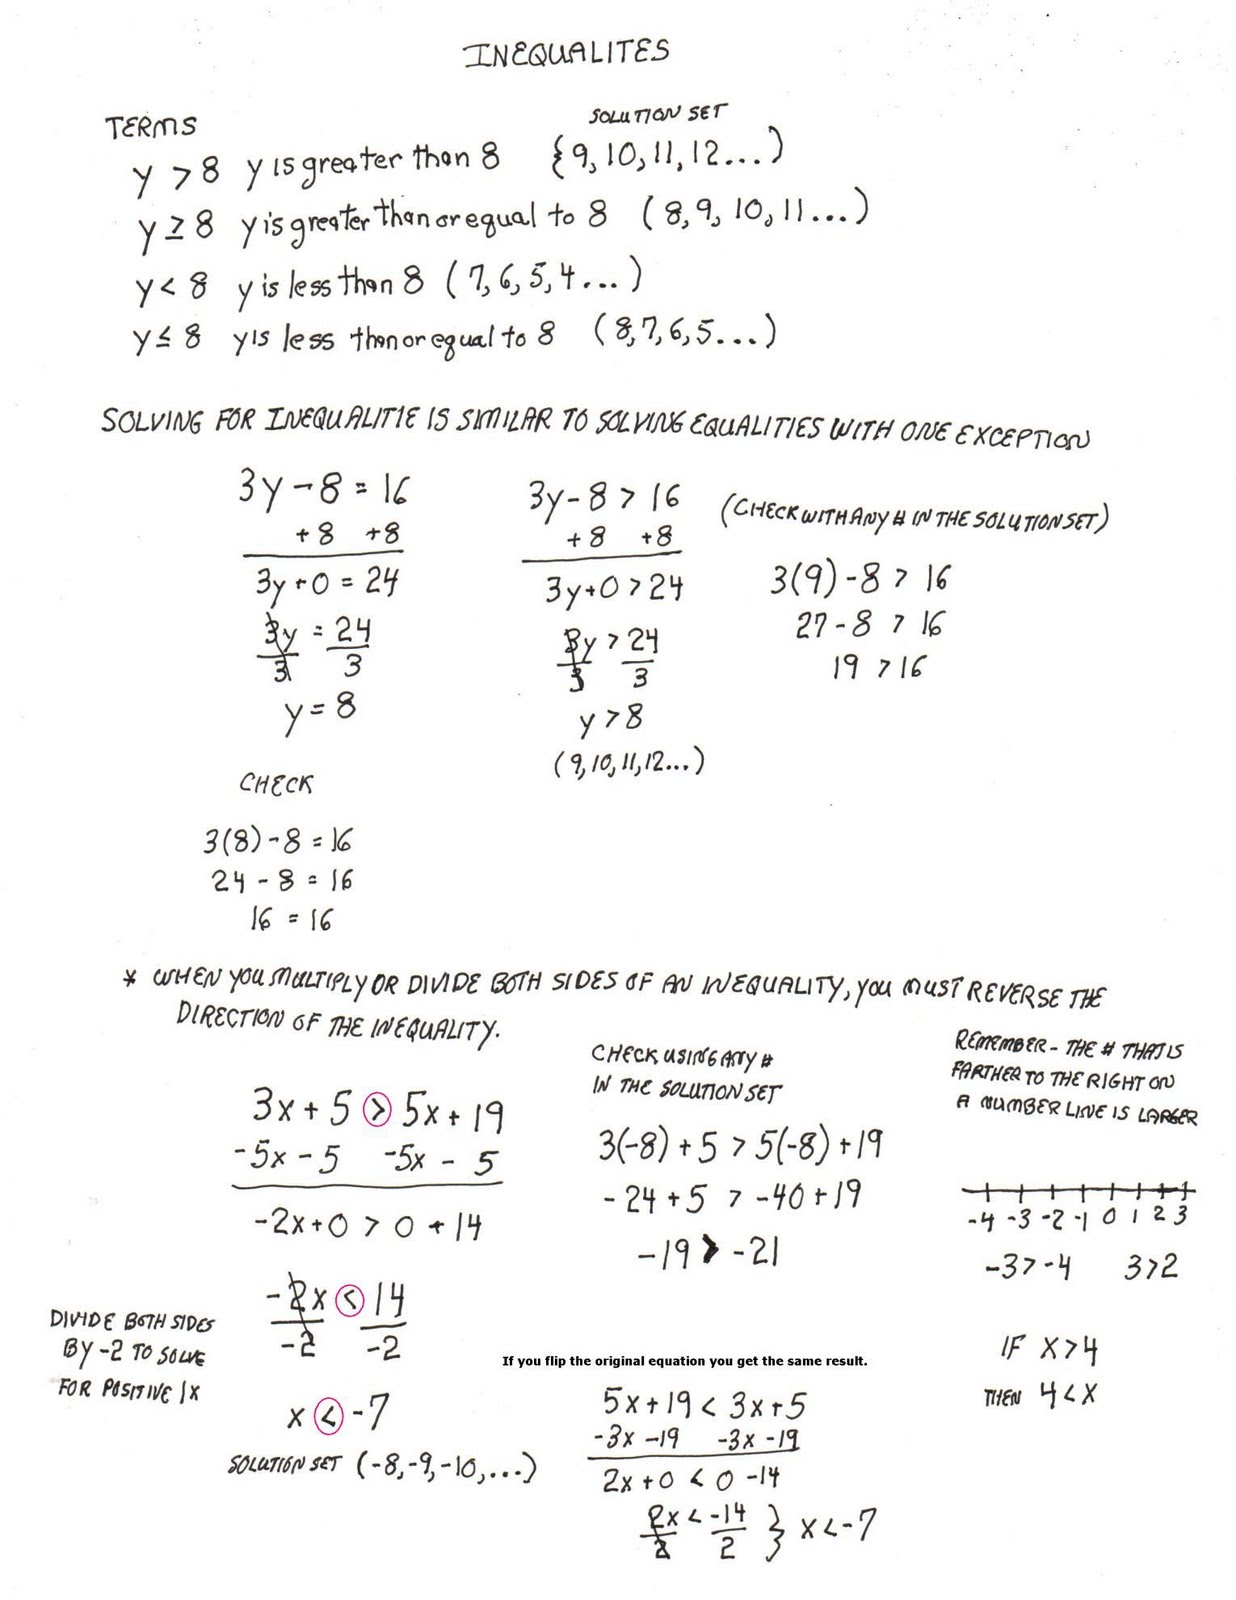 Cobb Adult Ed Math Solving And Graphing Inequalities